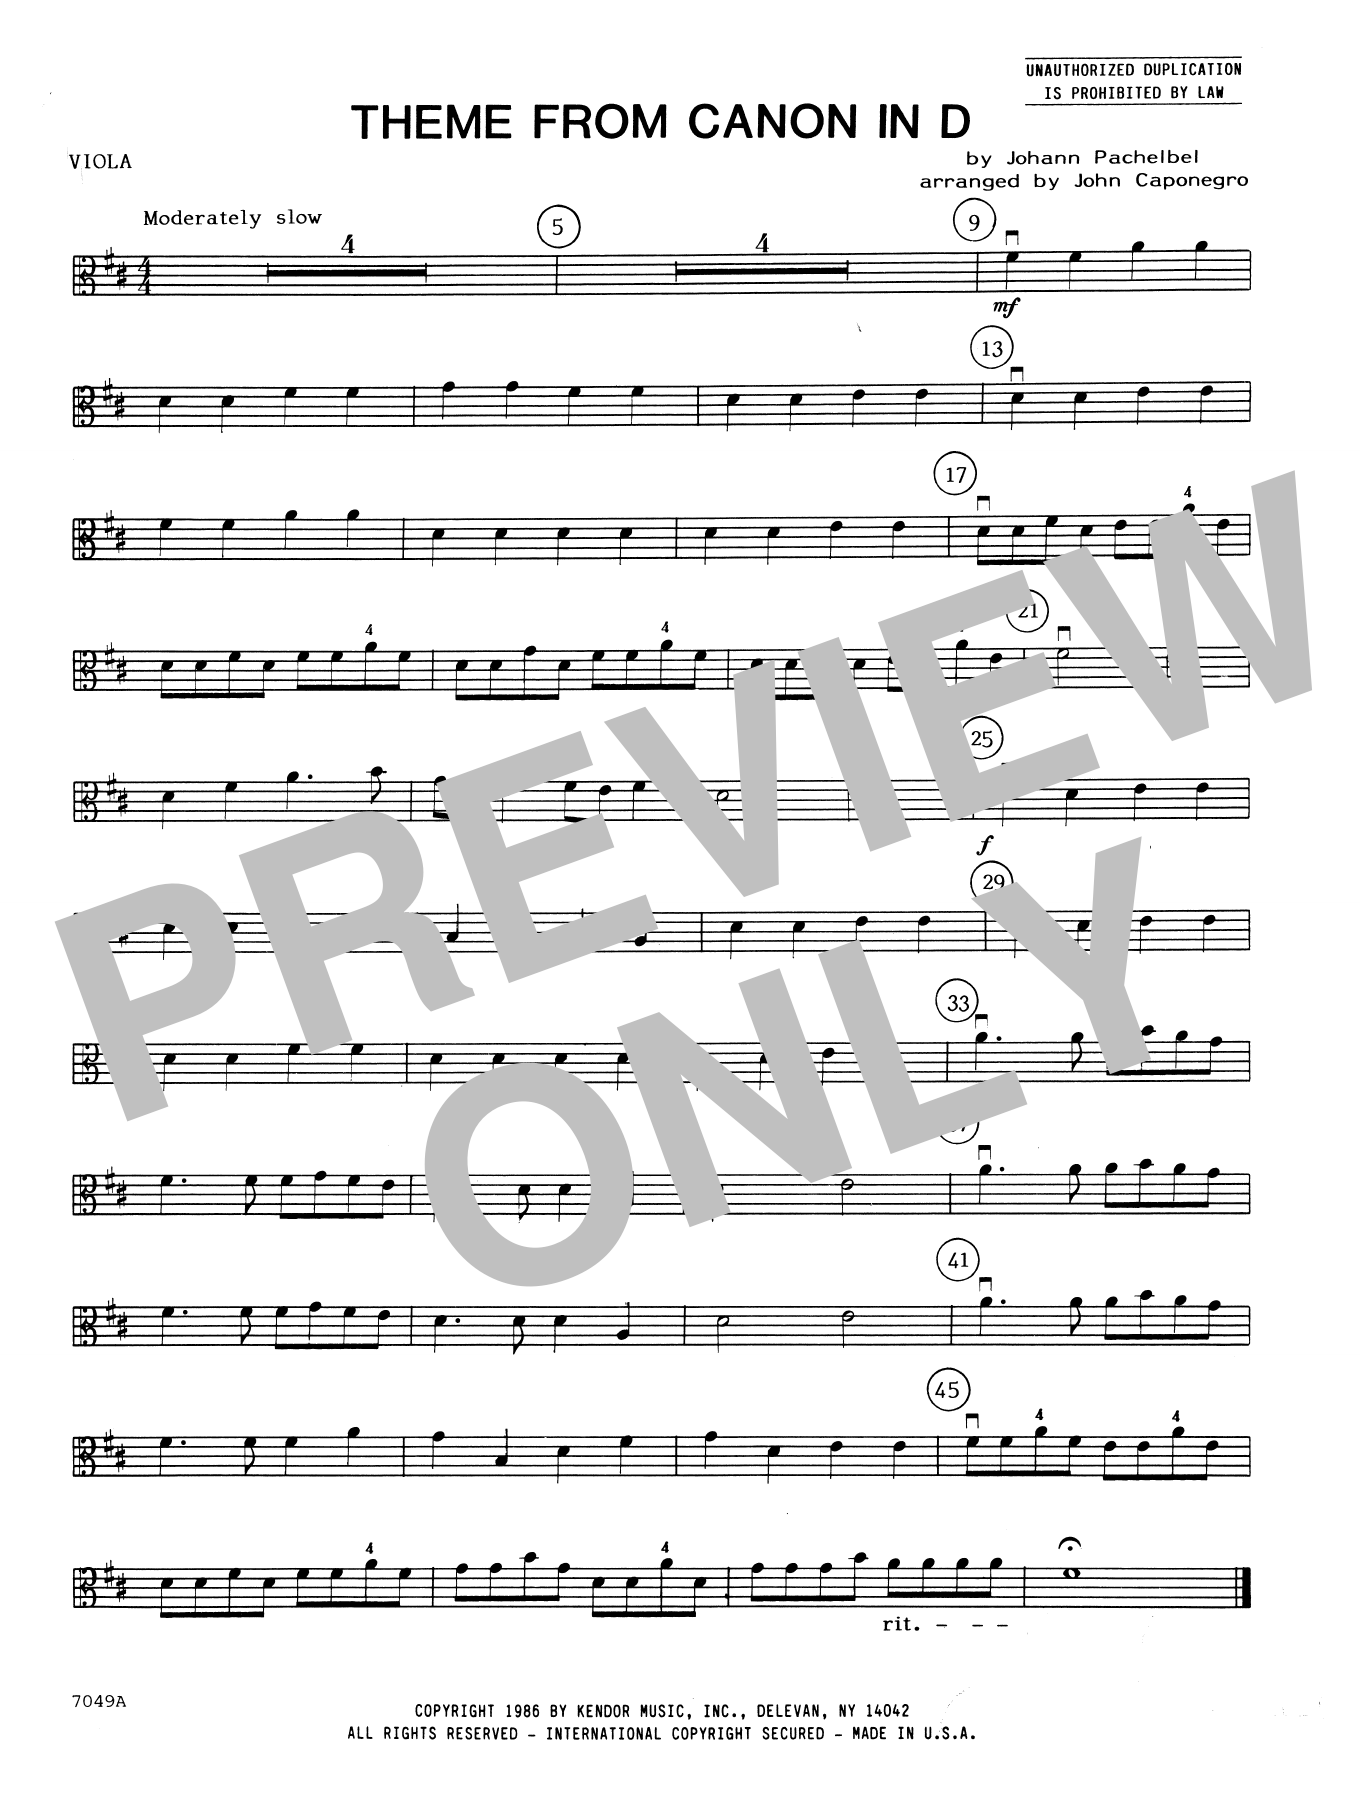 Sheet Music Digital Files To Print - Licensed Orchestra Digital